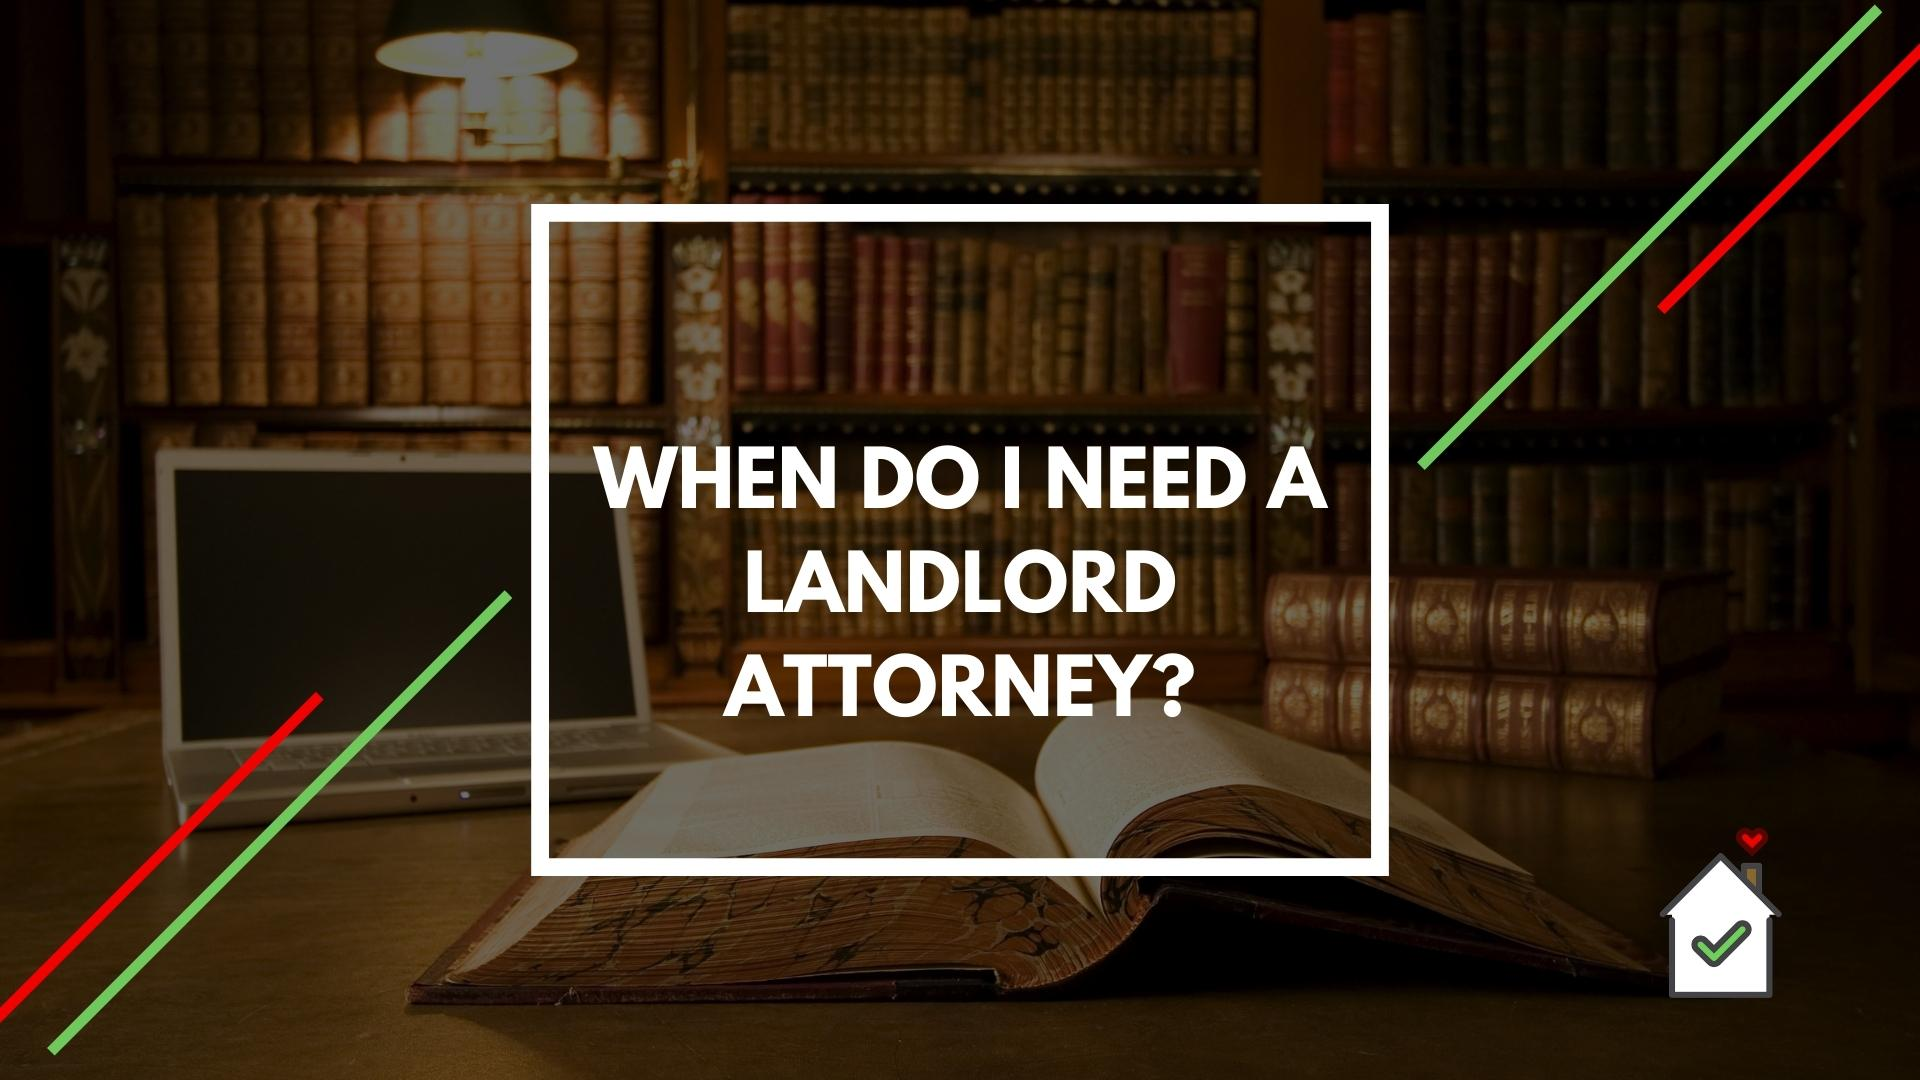 10-tenant-report-when-do-i-need-a-landlord-attorney